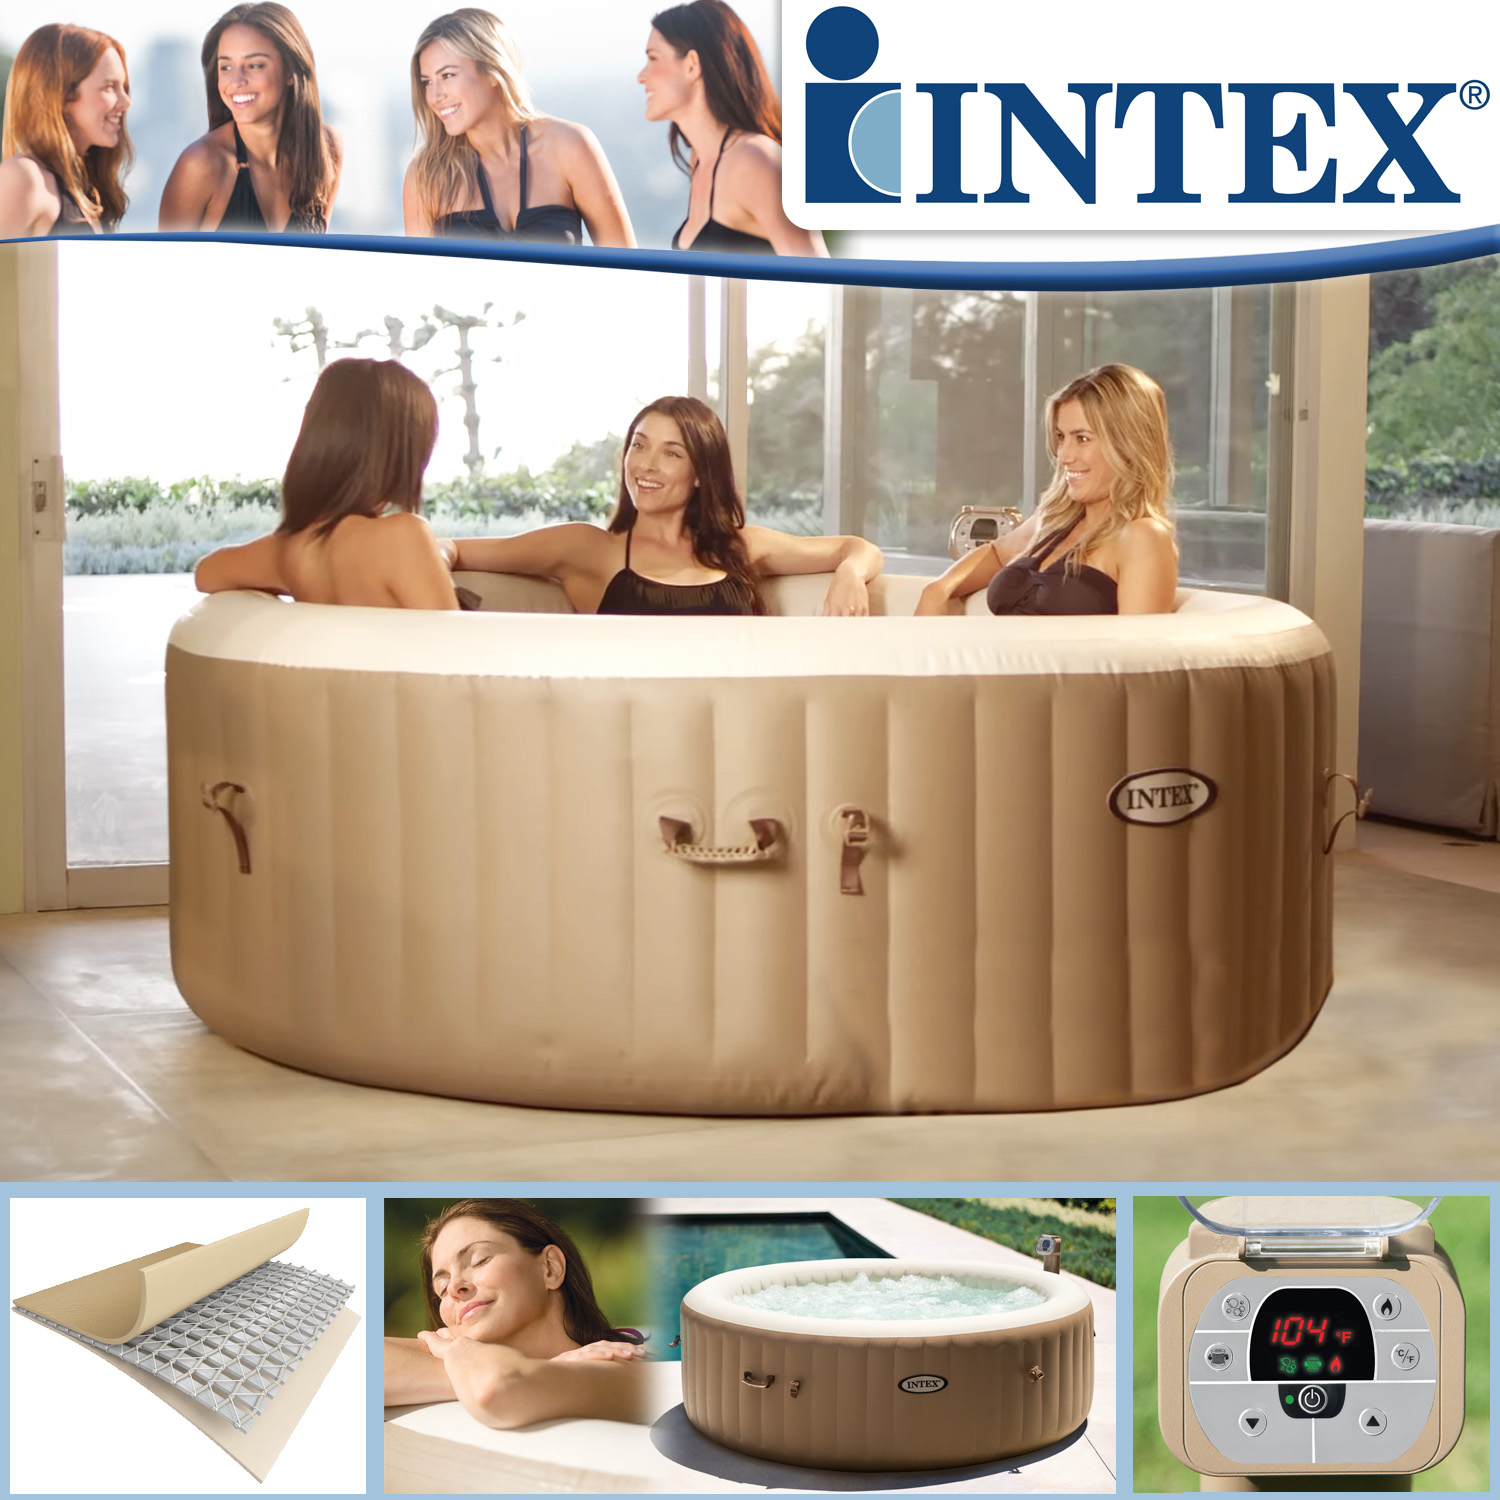 Intex Whirlpool Pure Spa Bubble Massage mit Kalkschutzsystem